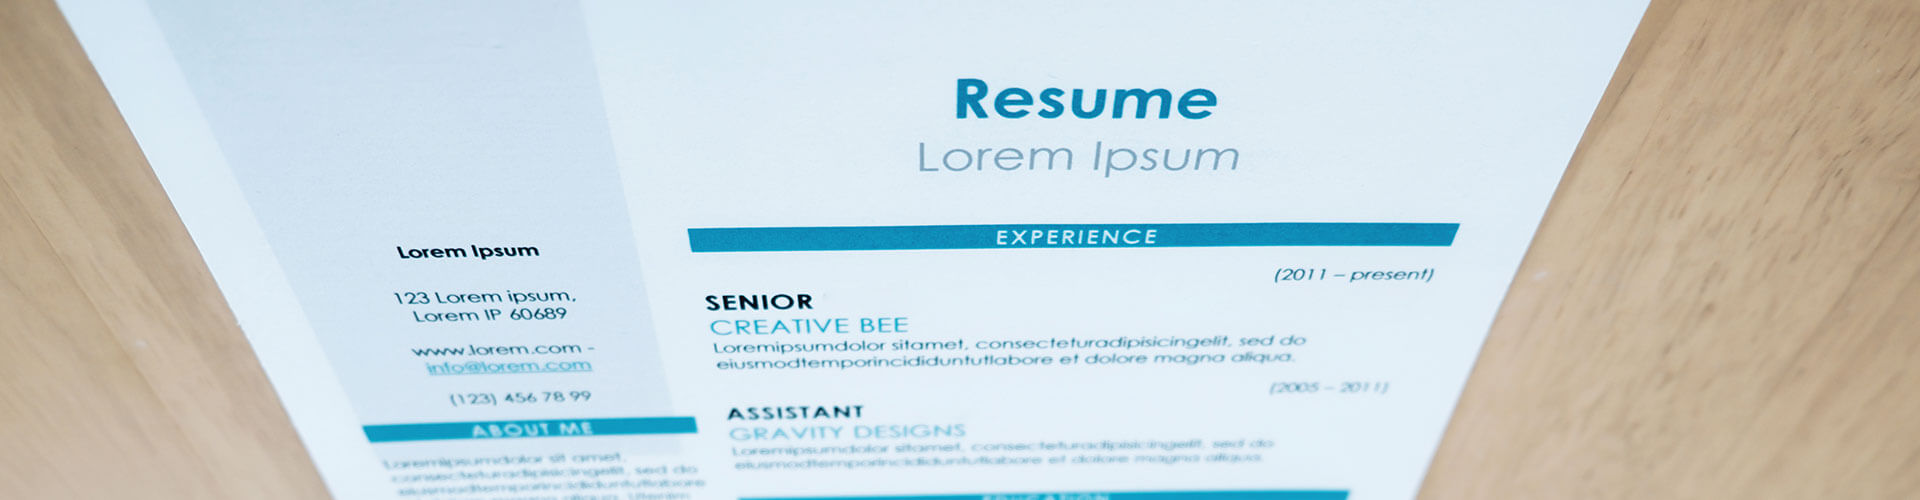 allinone resume sample